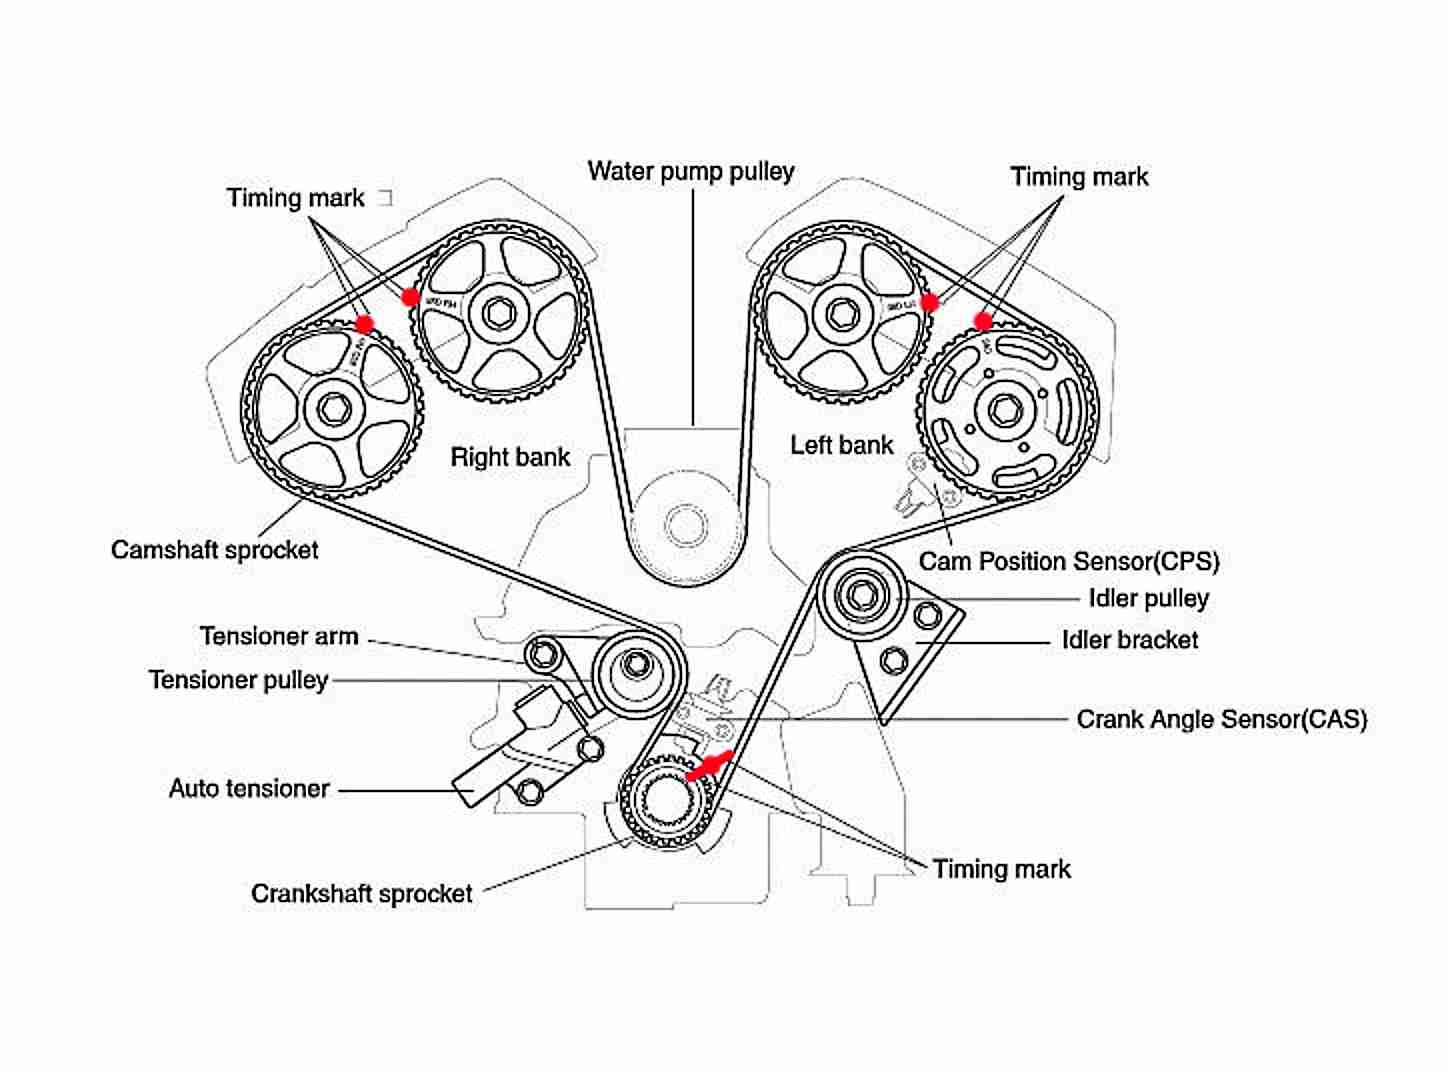 Nissan Terrano Crank Sensor Location moreover 2008 Nissan Wiring Diagrams furthermore 3ajjx Set Timing Chain 2004 Nissaan Altima 2 5 Sl I together with 2006 Nissan Altima 2 5 Engine Diagram as well P0008. on 2002 nissan sentra timing chain diagram